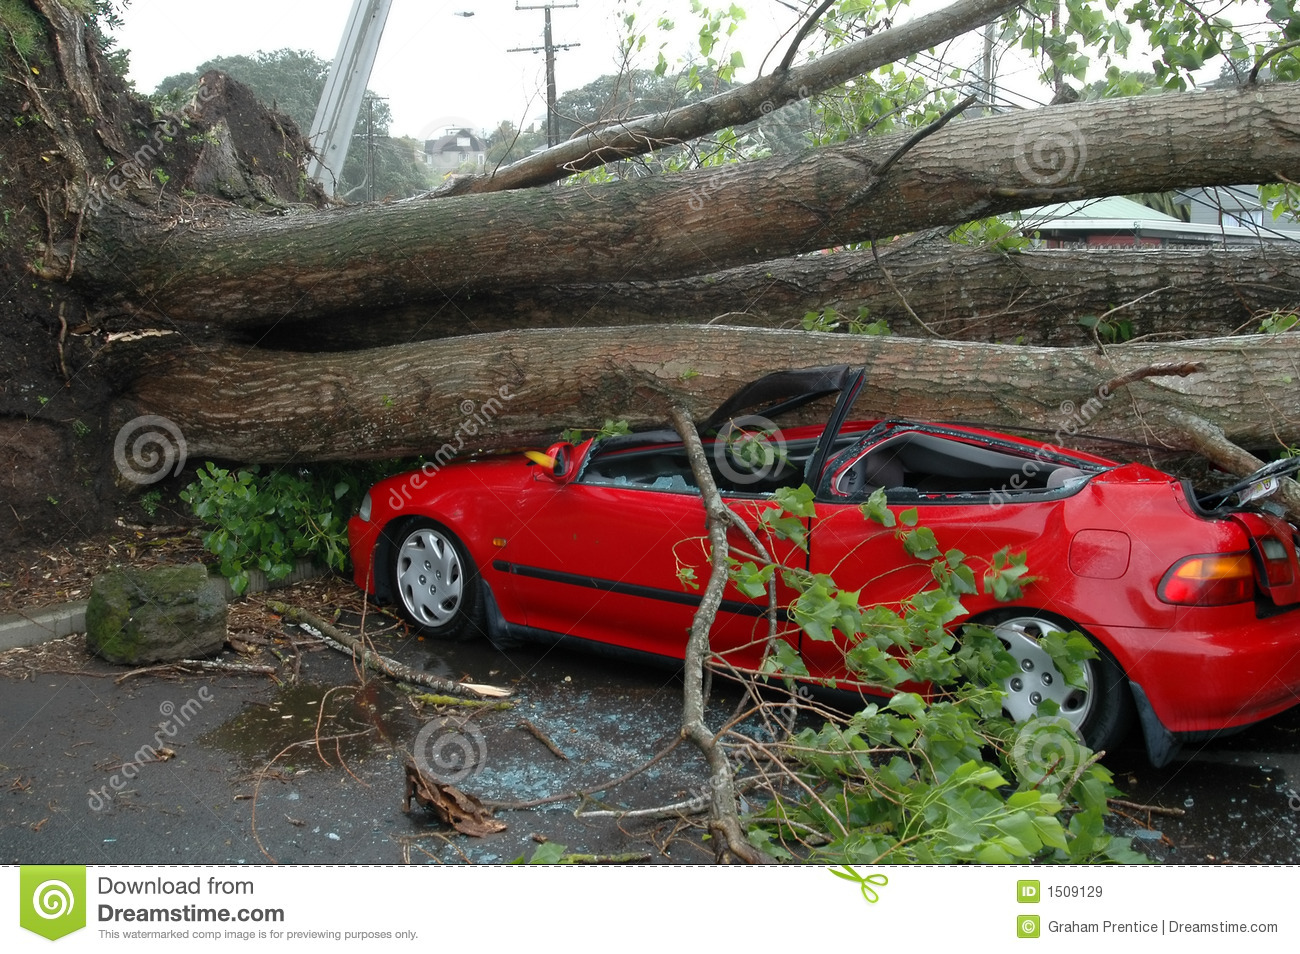 Car Crushed By Tree Royalty Free Stock Images - Image: 1509129